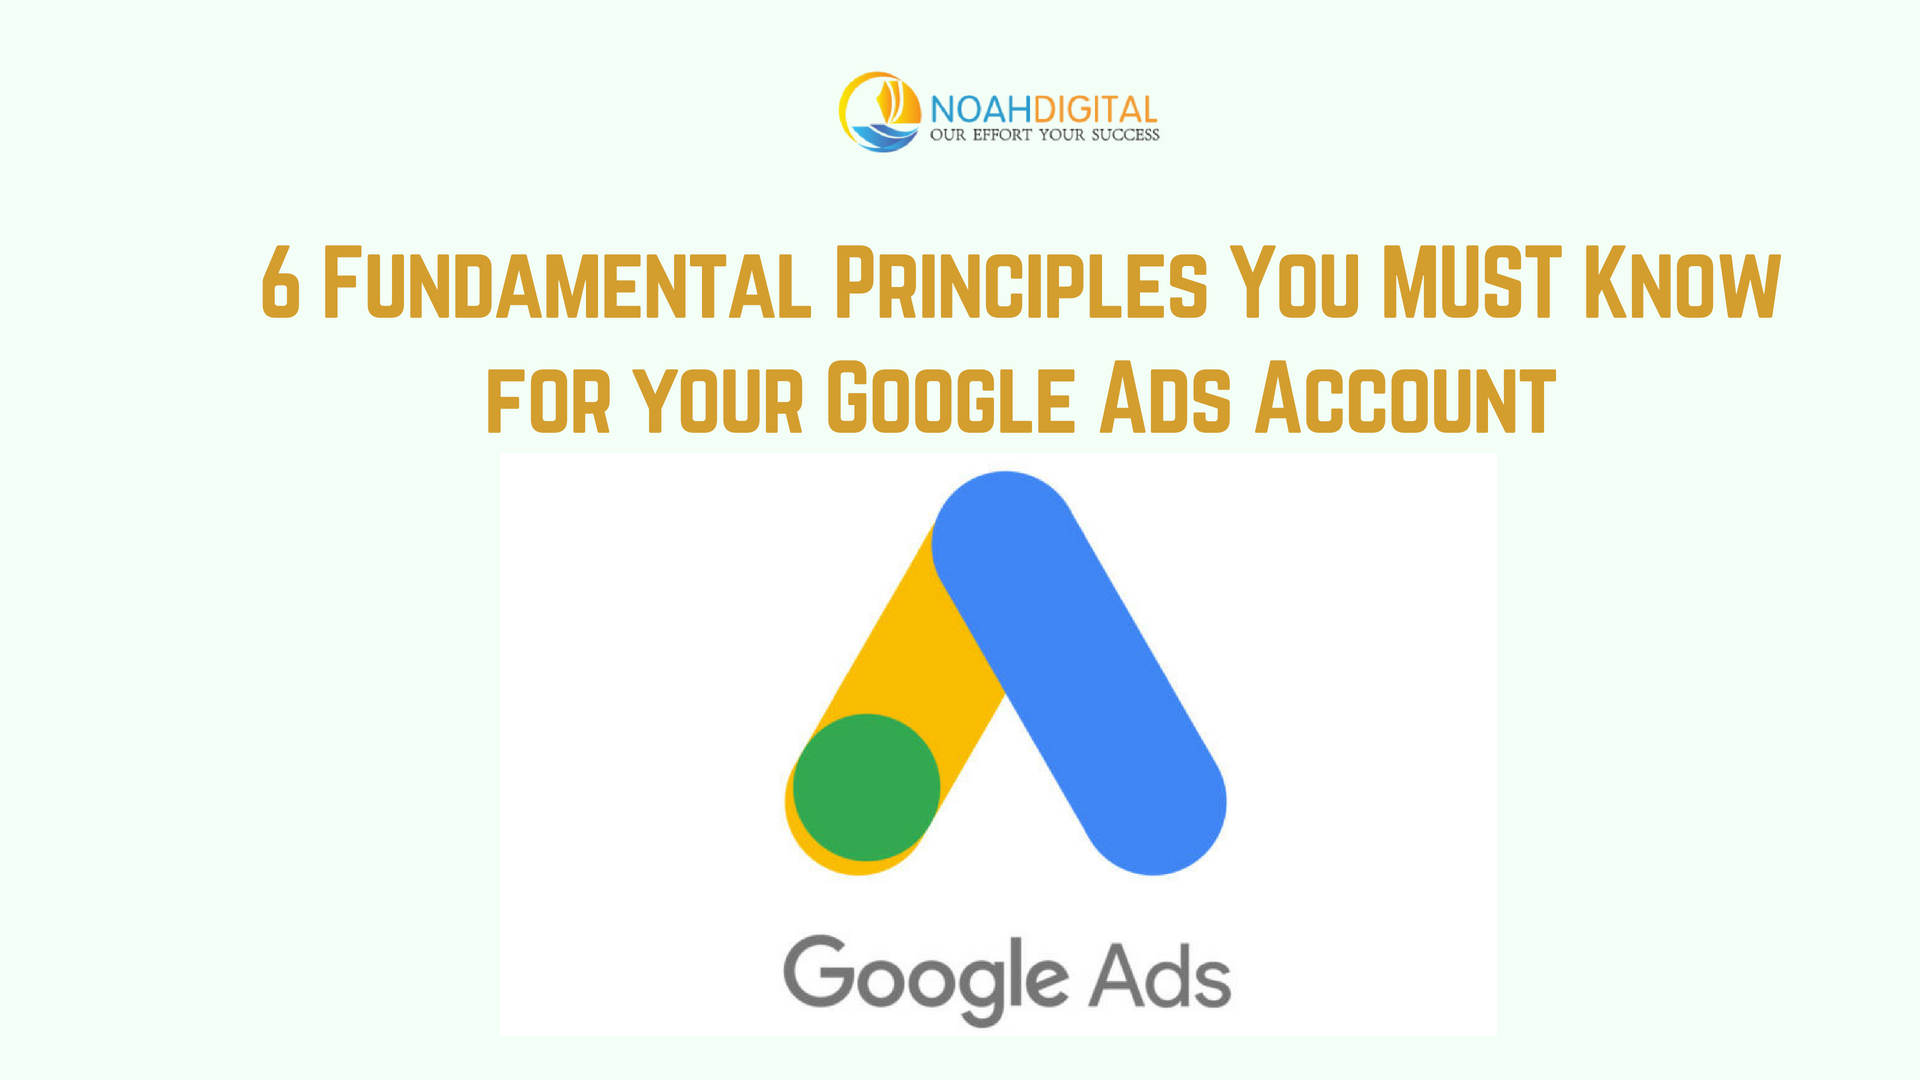 6 Fundamental Principles You MUST Know for Google Ads